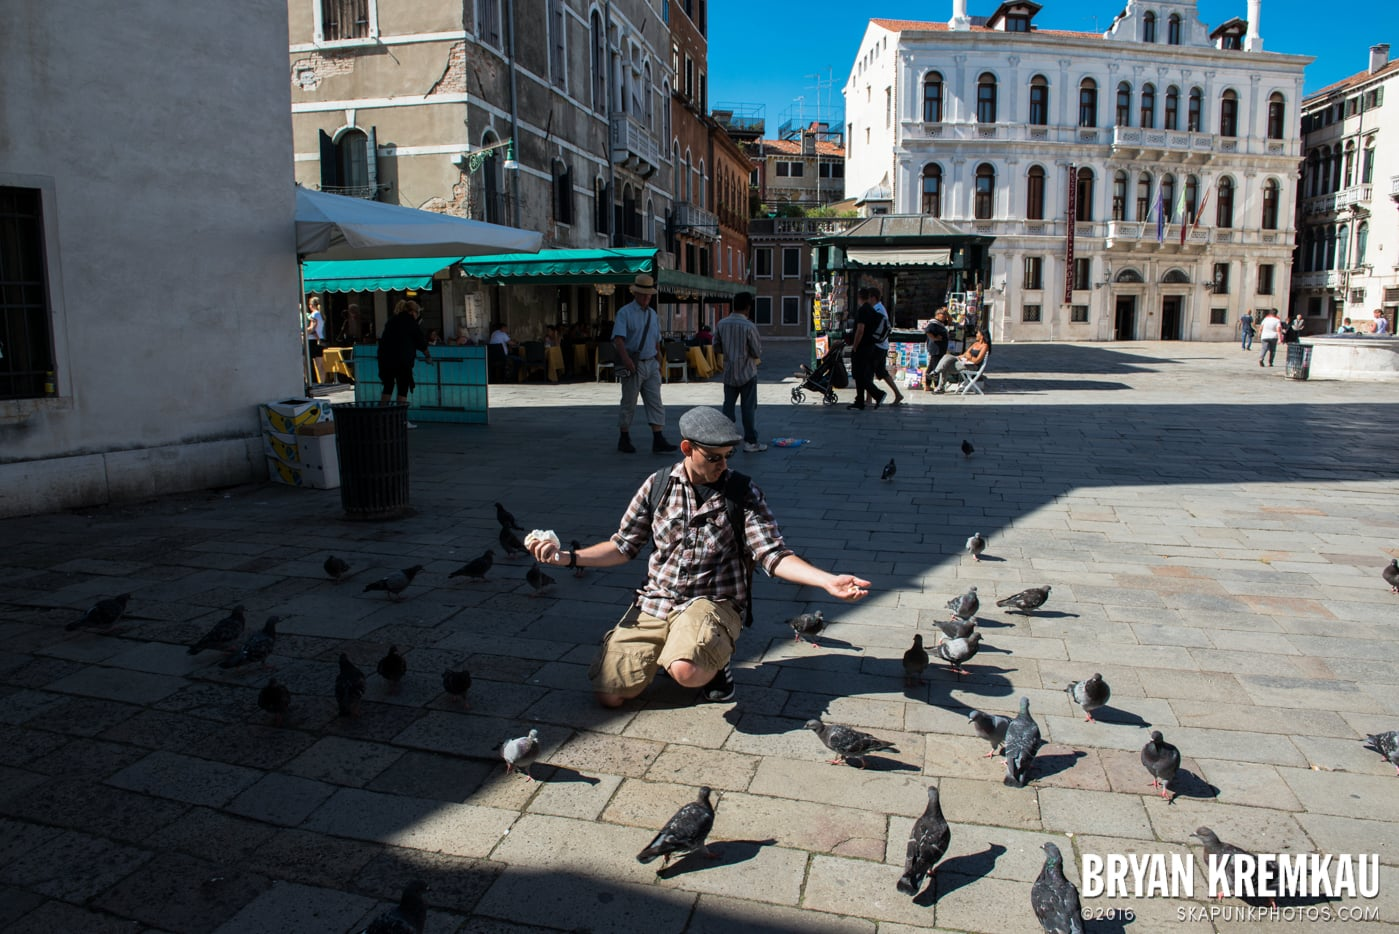 Italy Vacation - Day 4: Venice - 9.12.13 (75)